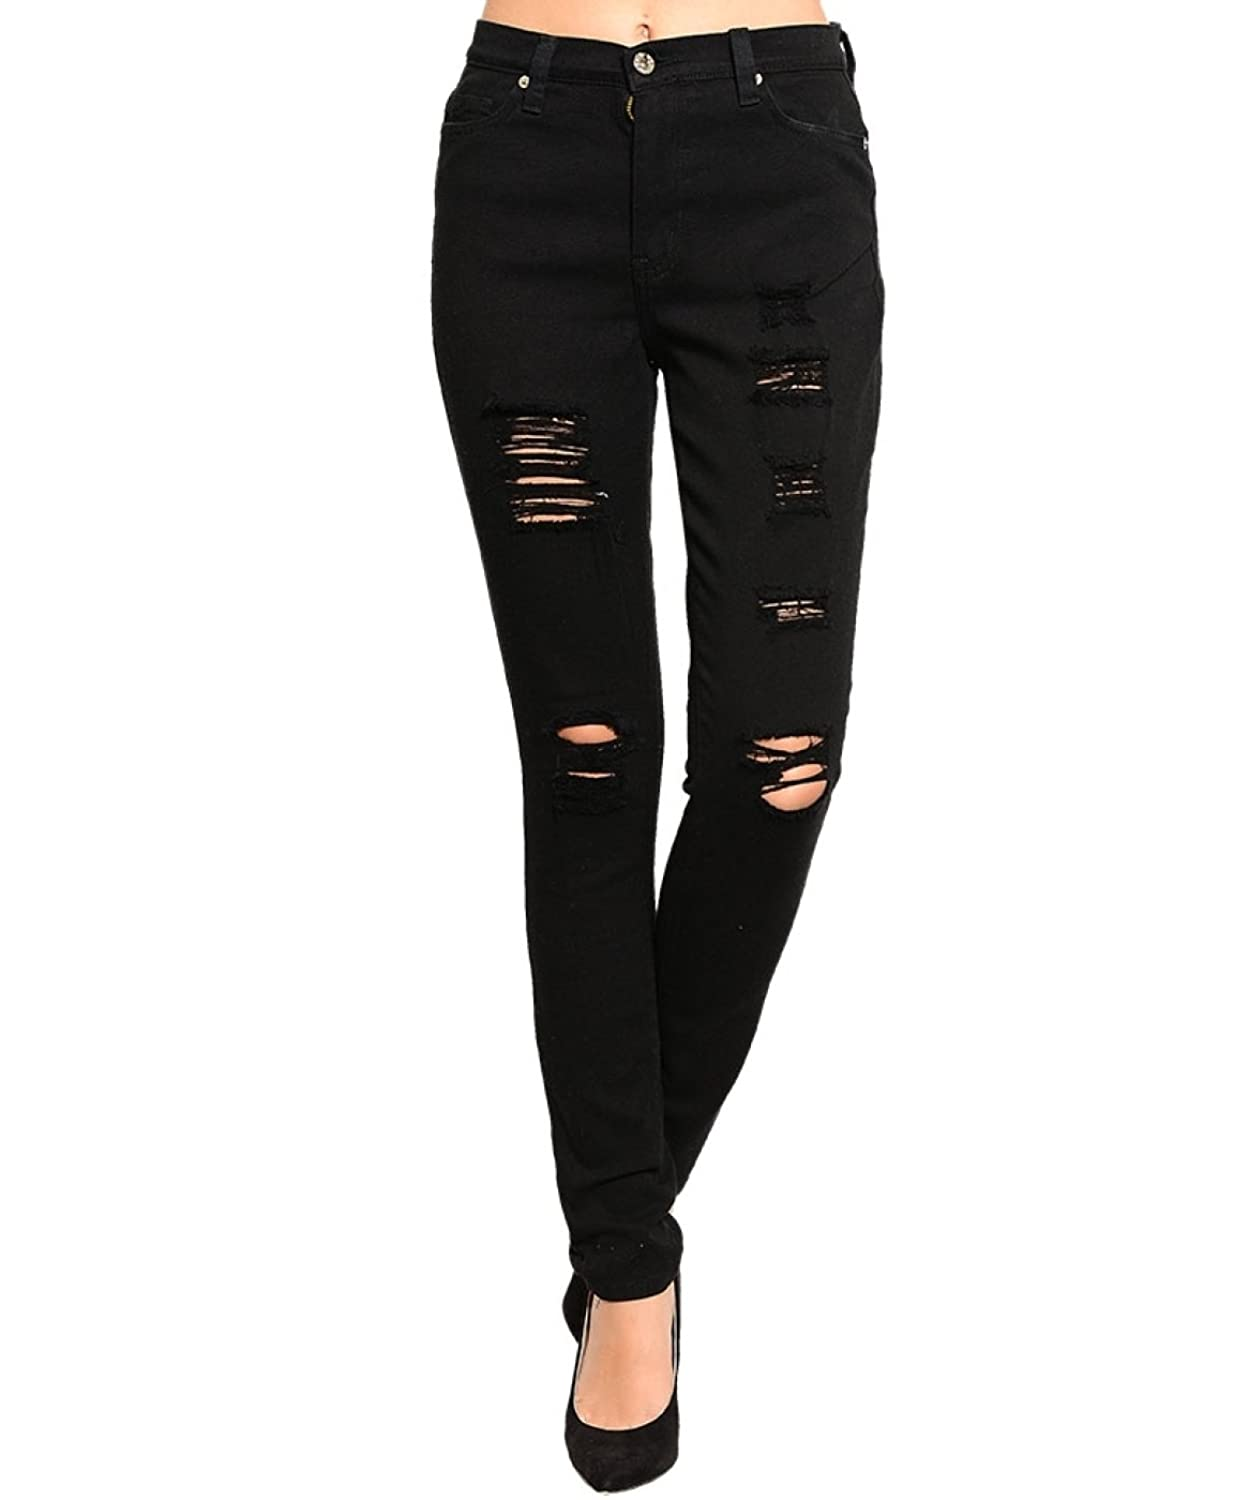 2LUV Women'sHigh Waisted Distressed Skinny Jeans Black 11 (P1123)